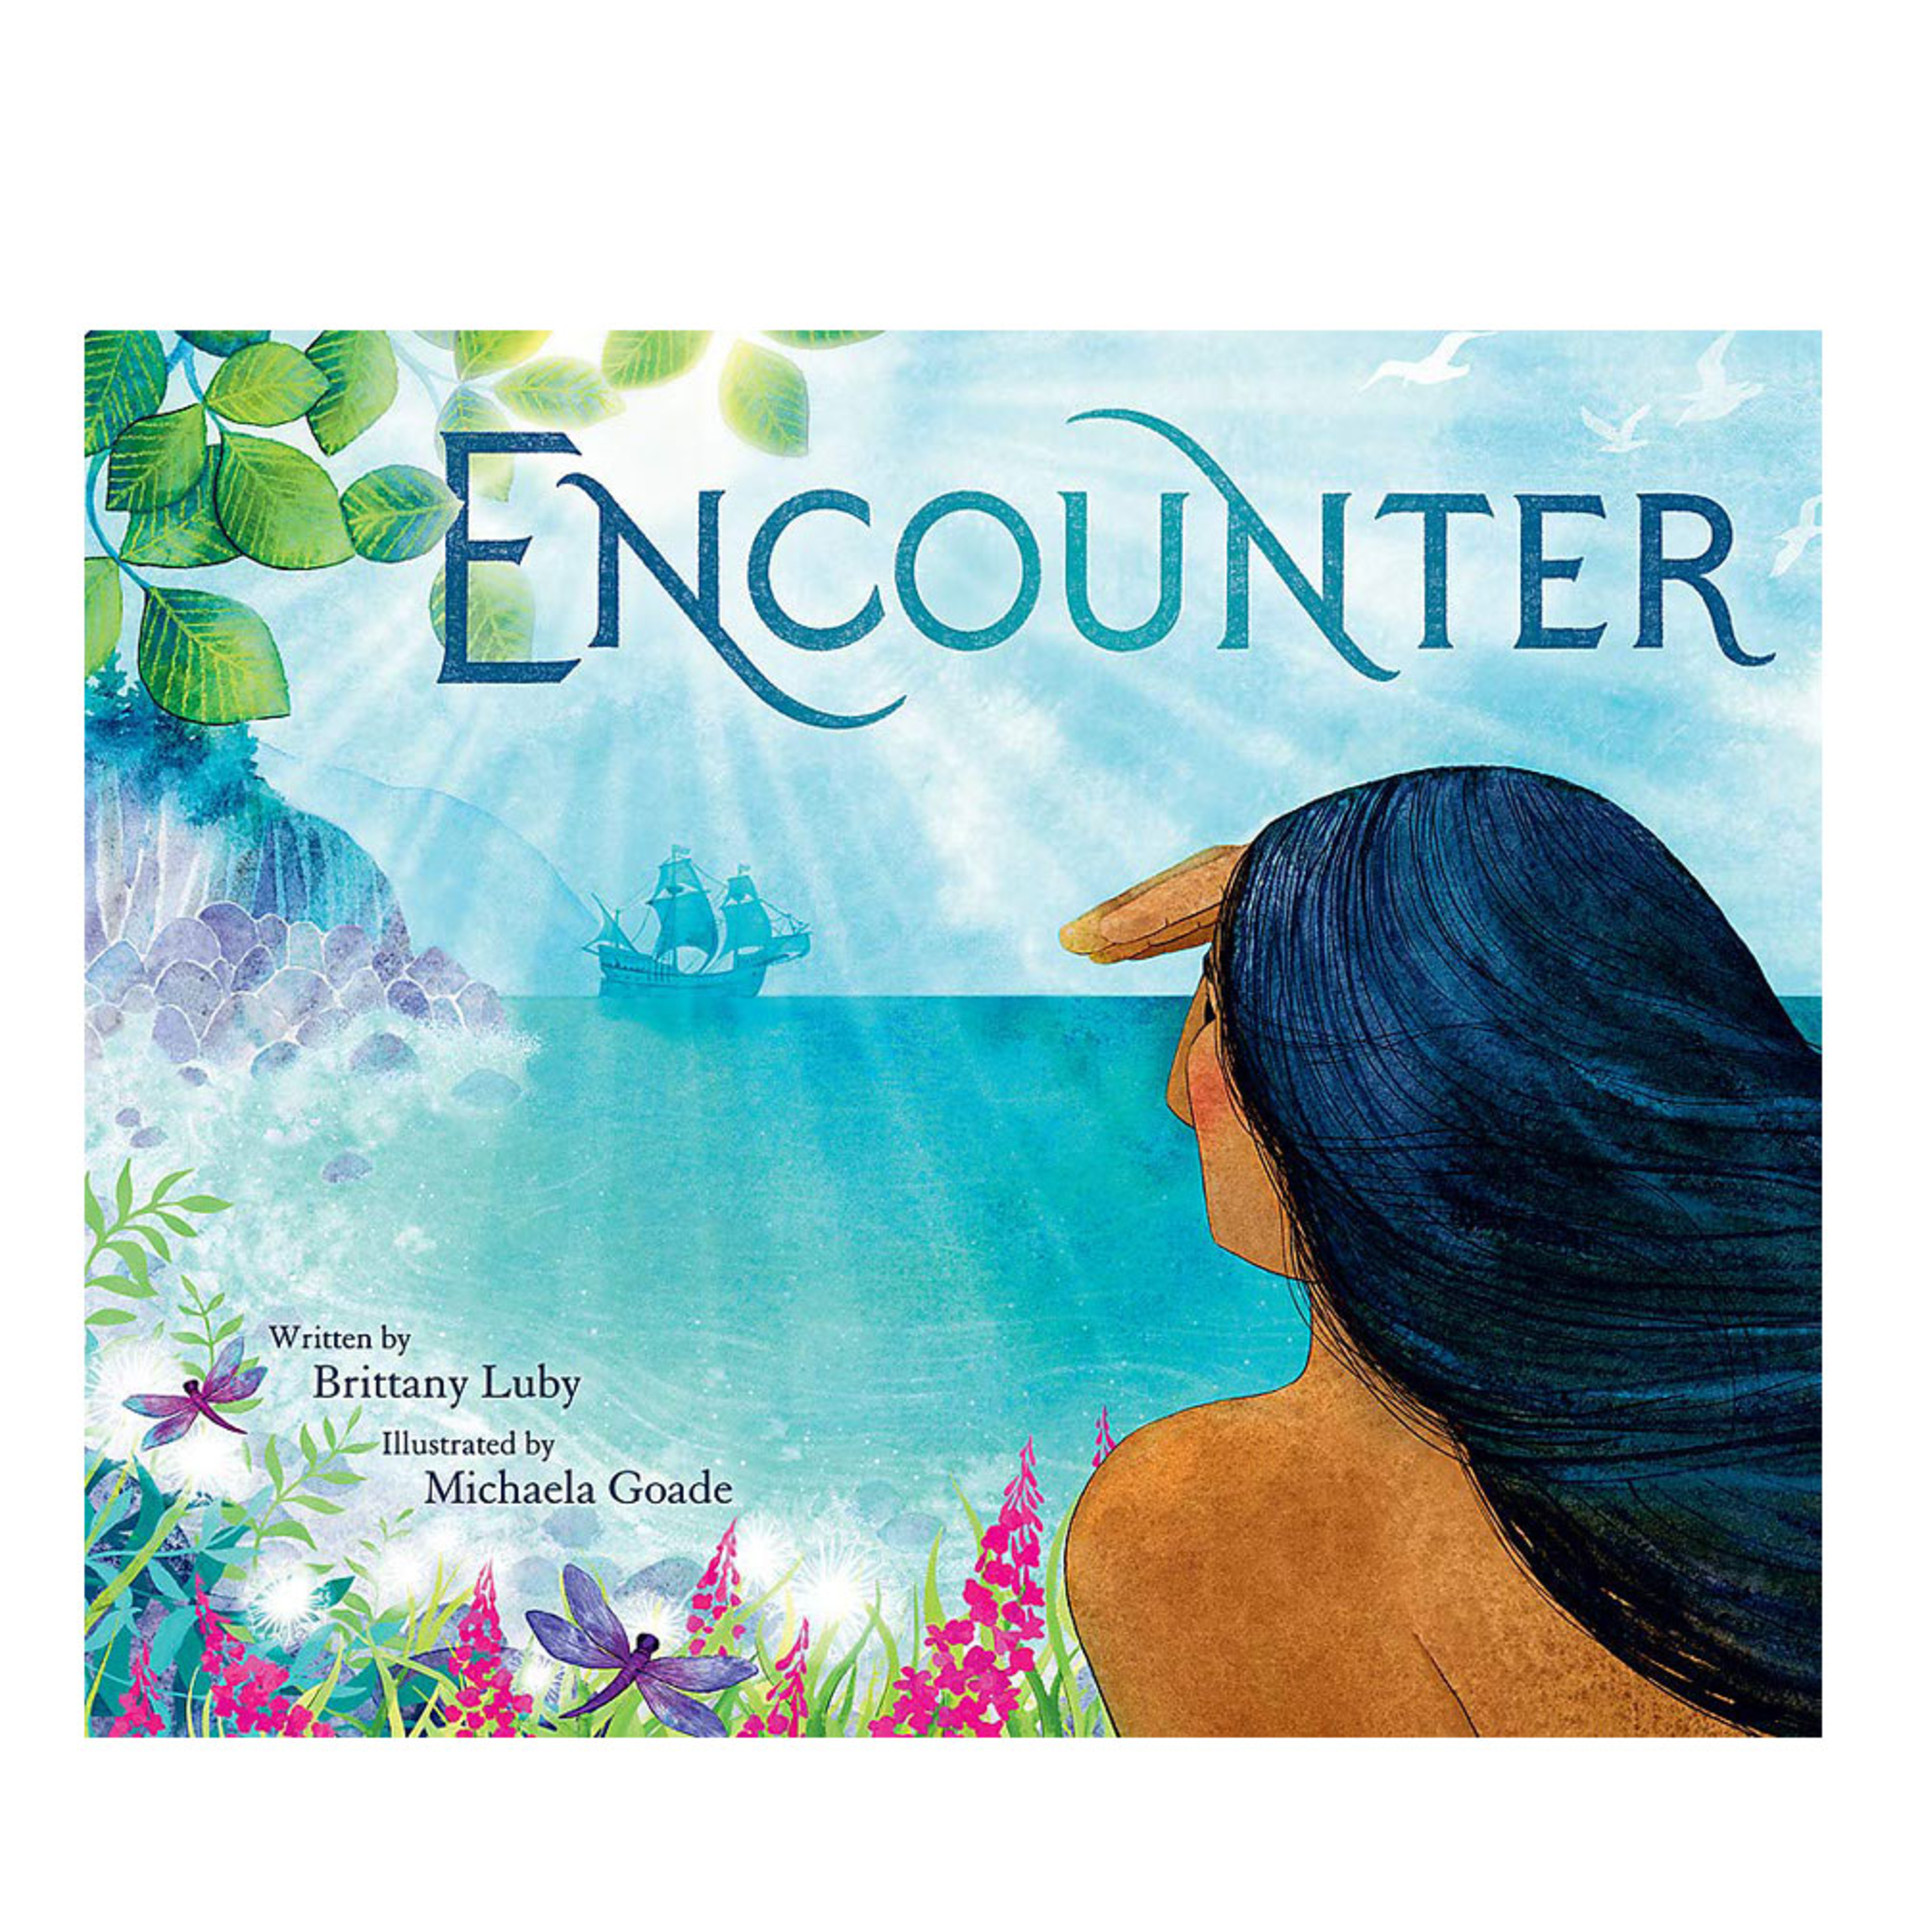 Encounter by Brittany Luby and Michaela Goade